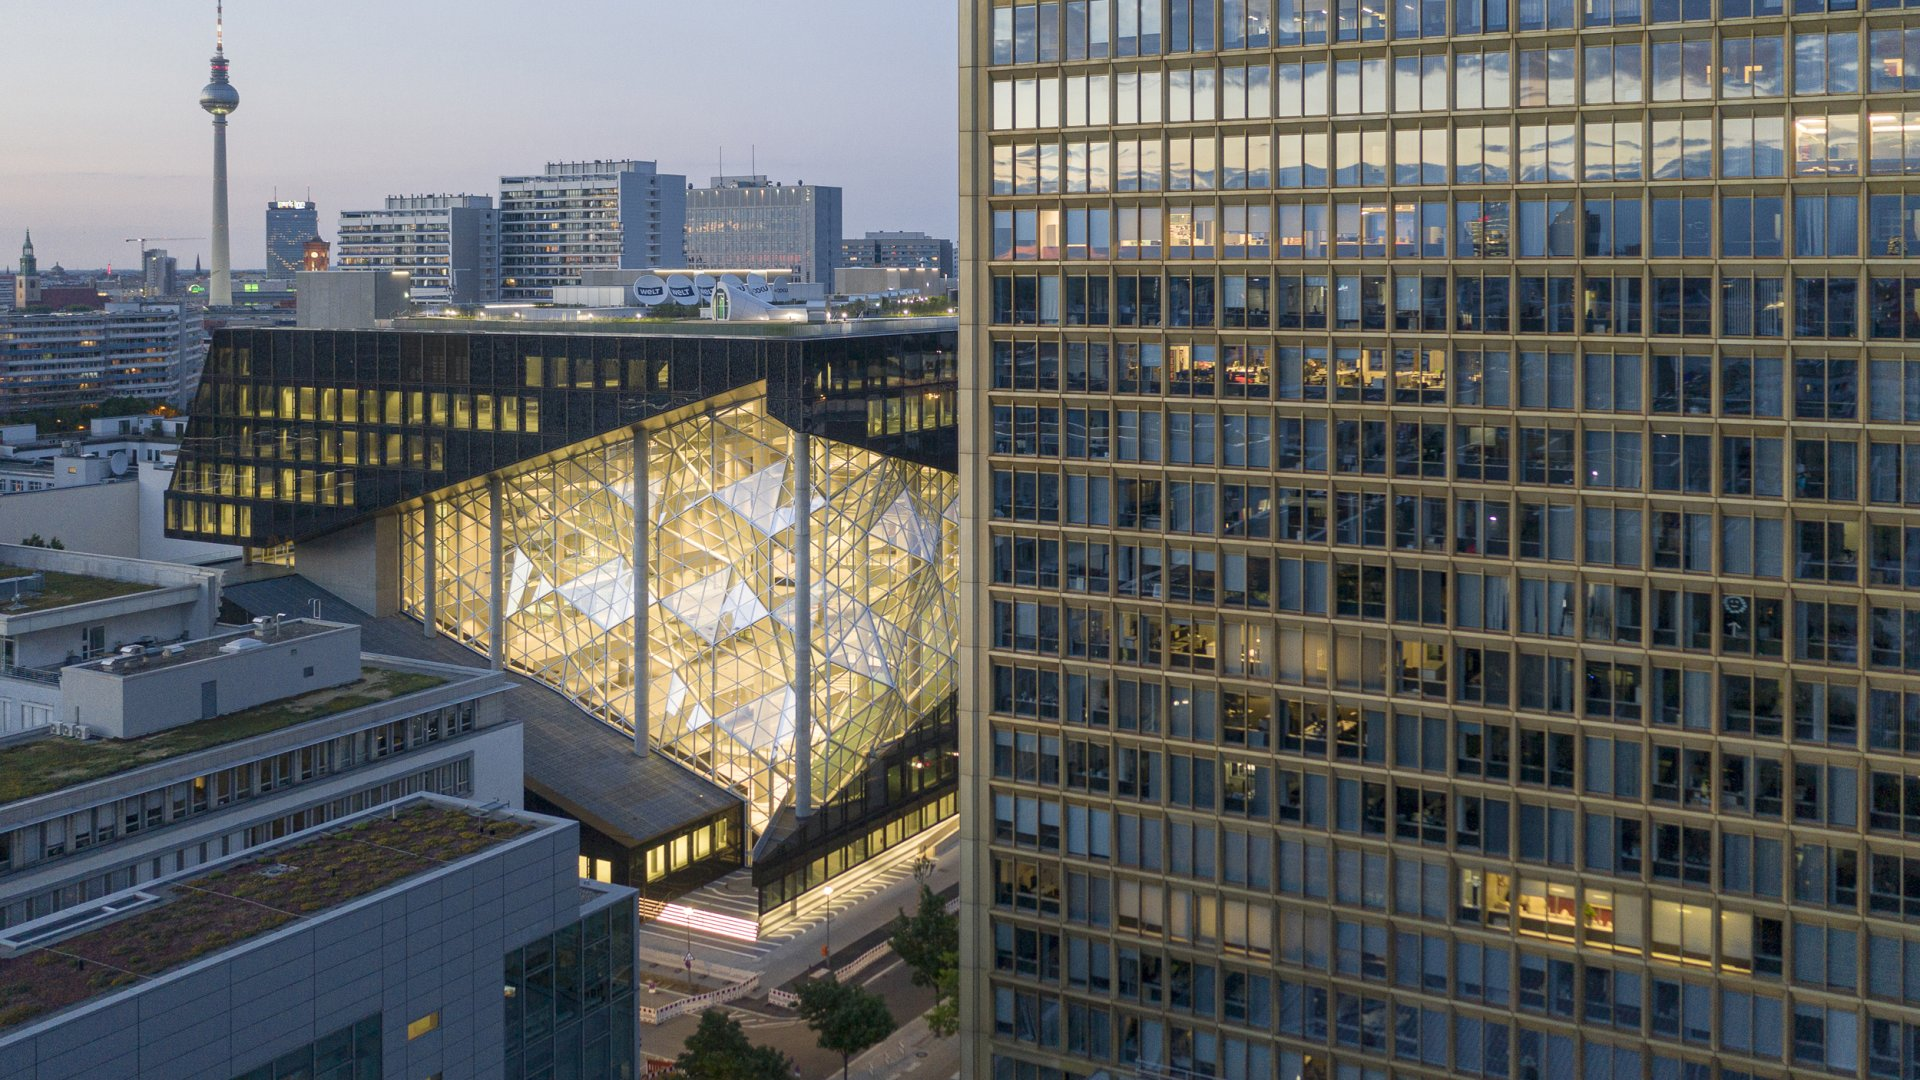 axel_springer_campus_berlin_copyright_laurianghinitoiu_concepteur_lumiere_internal_use_2_of_5_r.jpg